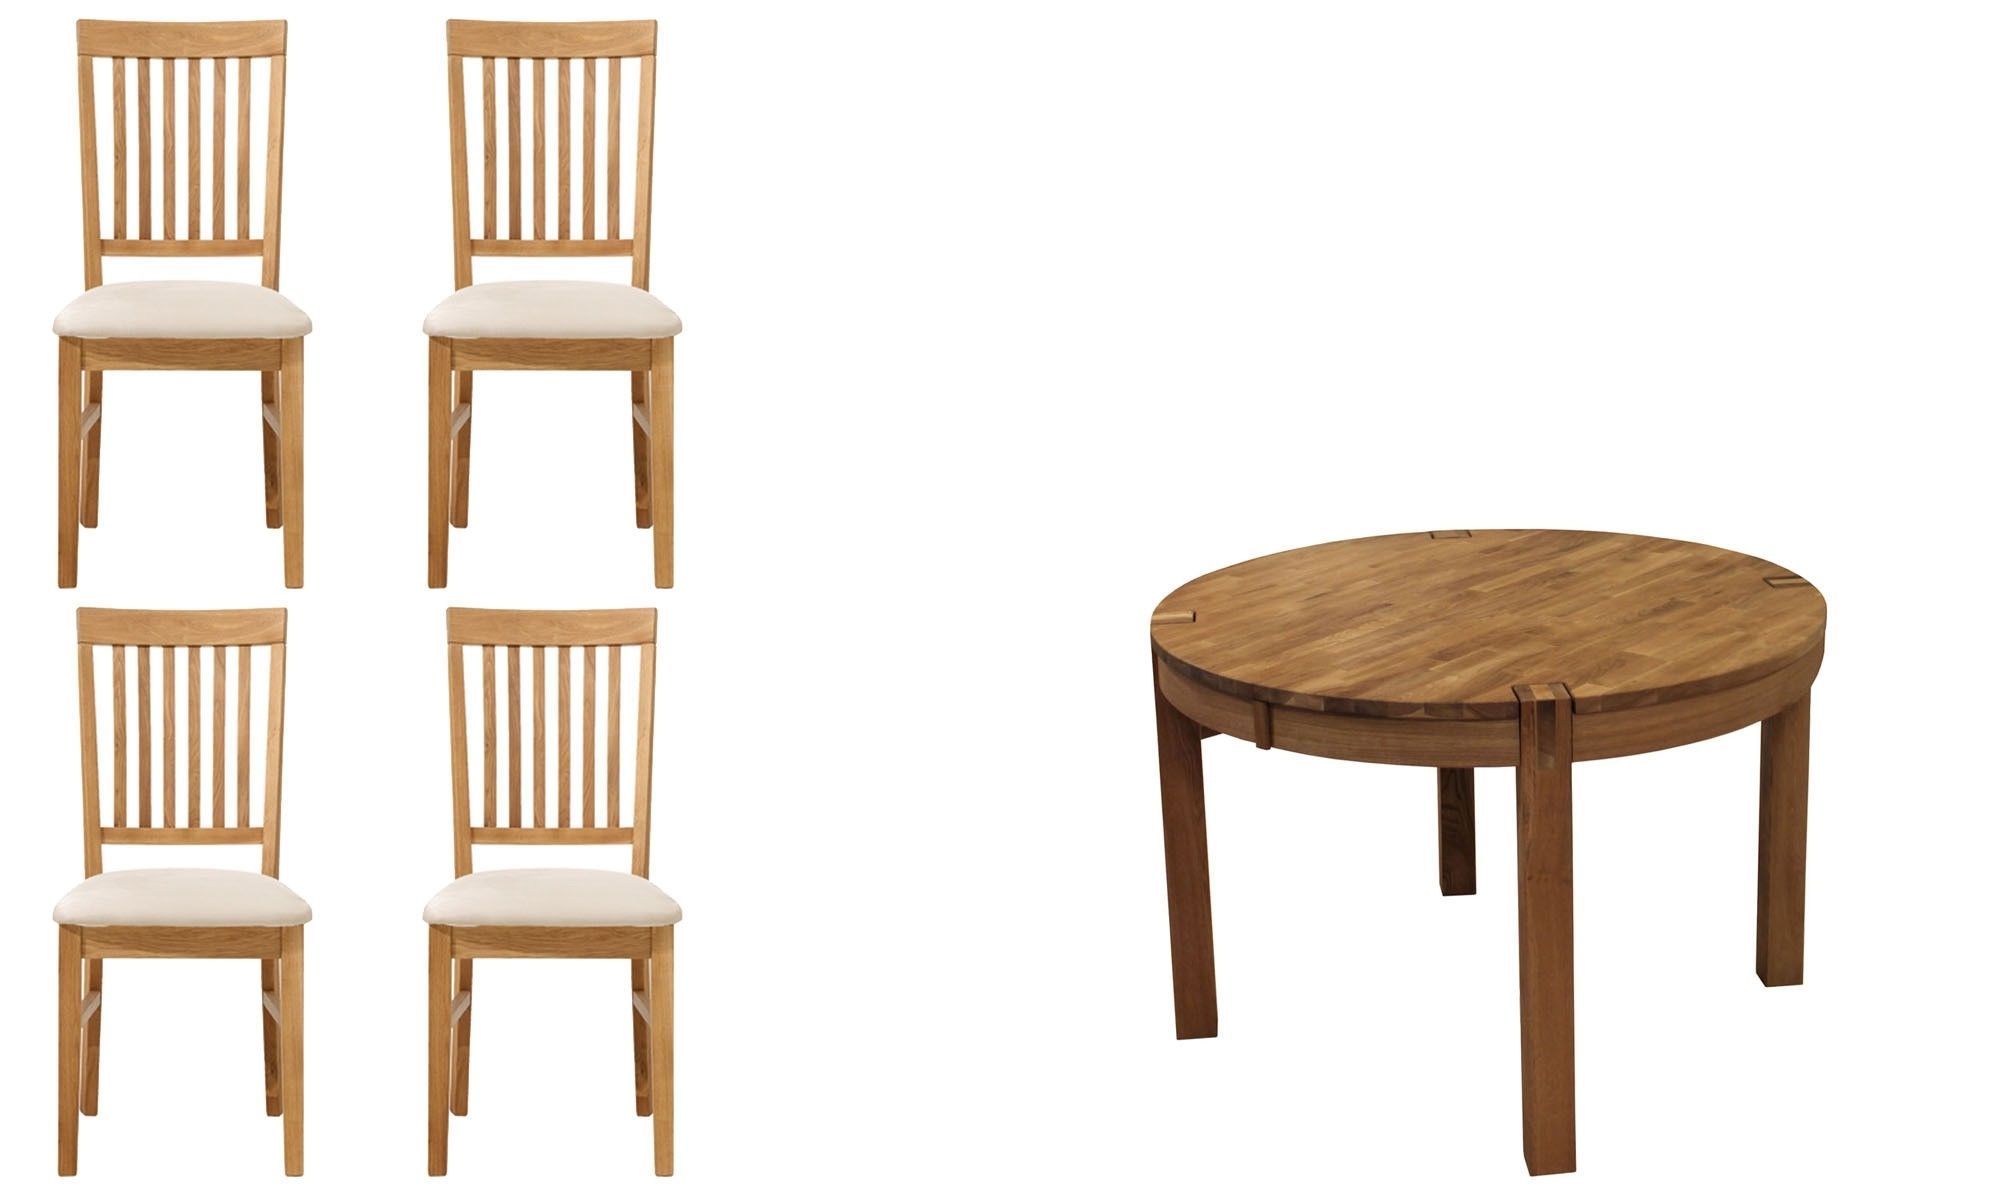 Famous Extending Dining Table Sets Inside Royal Oak – Round Extending Dining Table Sets – Fishpools (View 15 of 25)